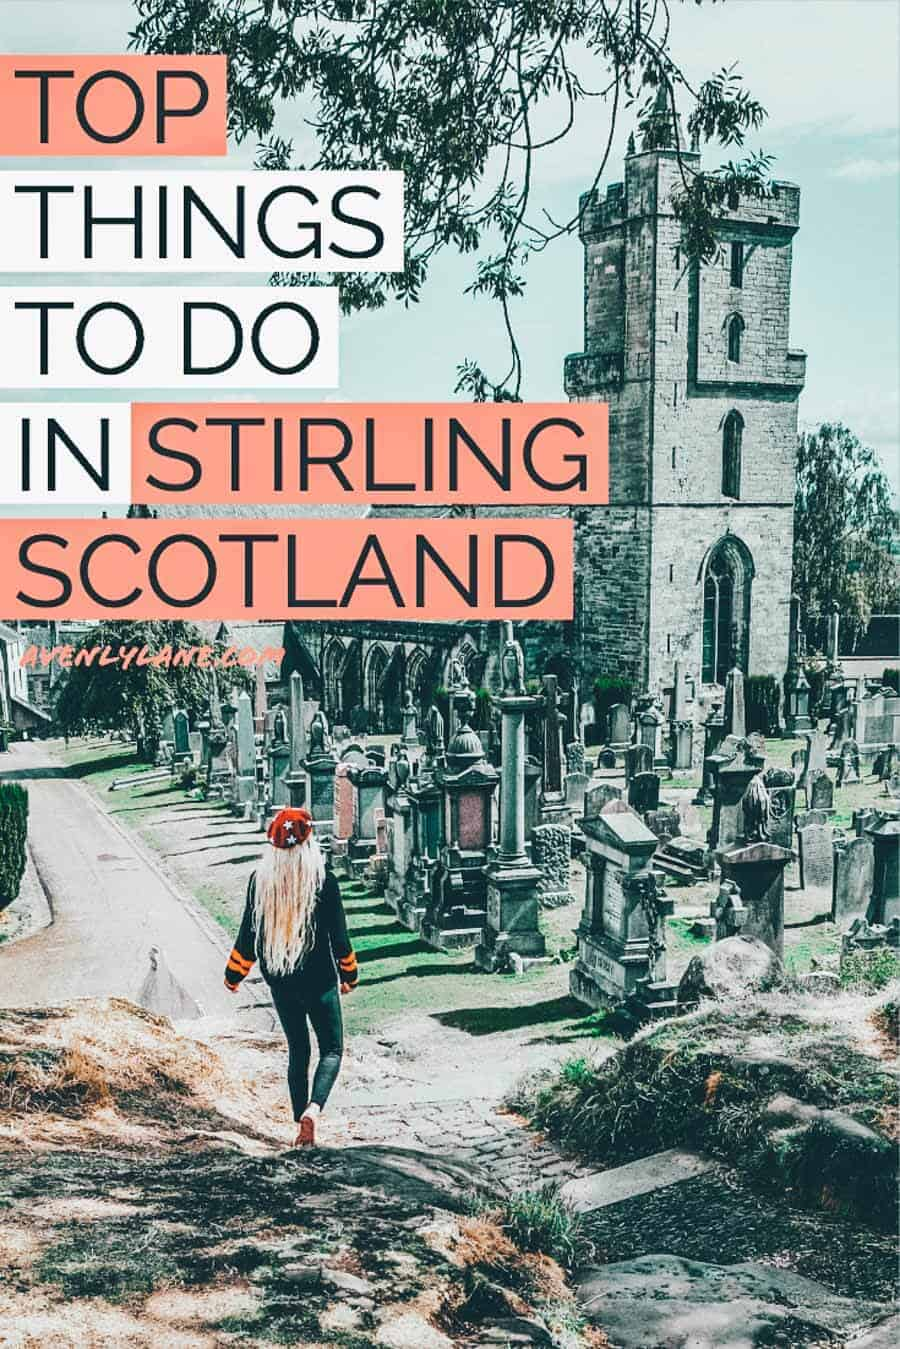 Scotland Attractions! Best things to do in Stirling Scotland!